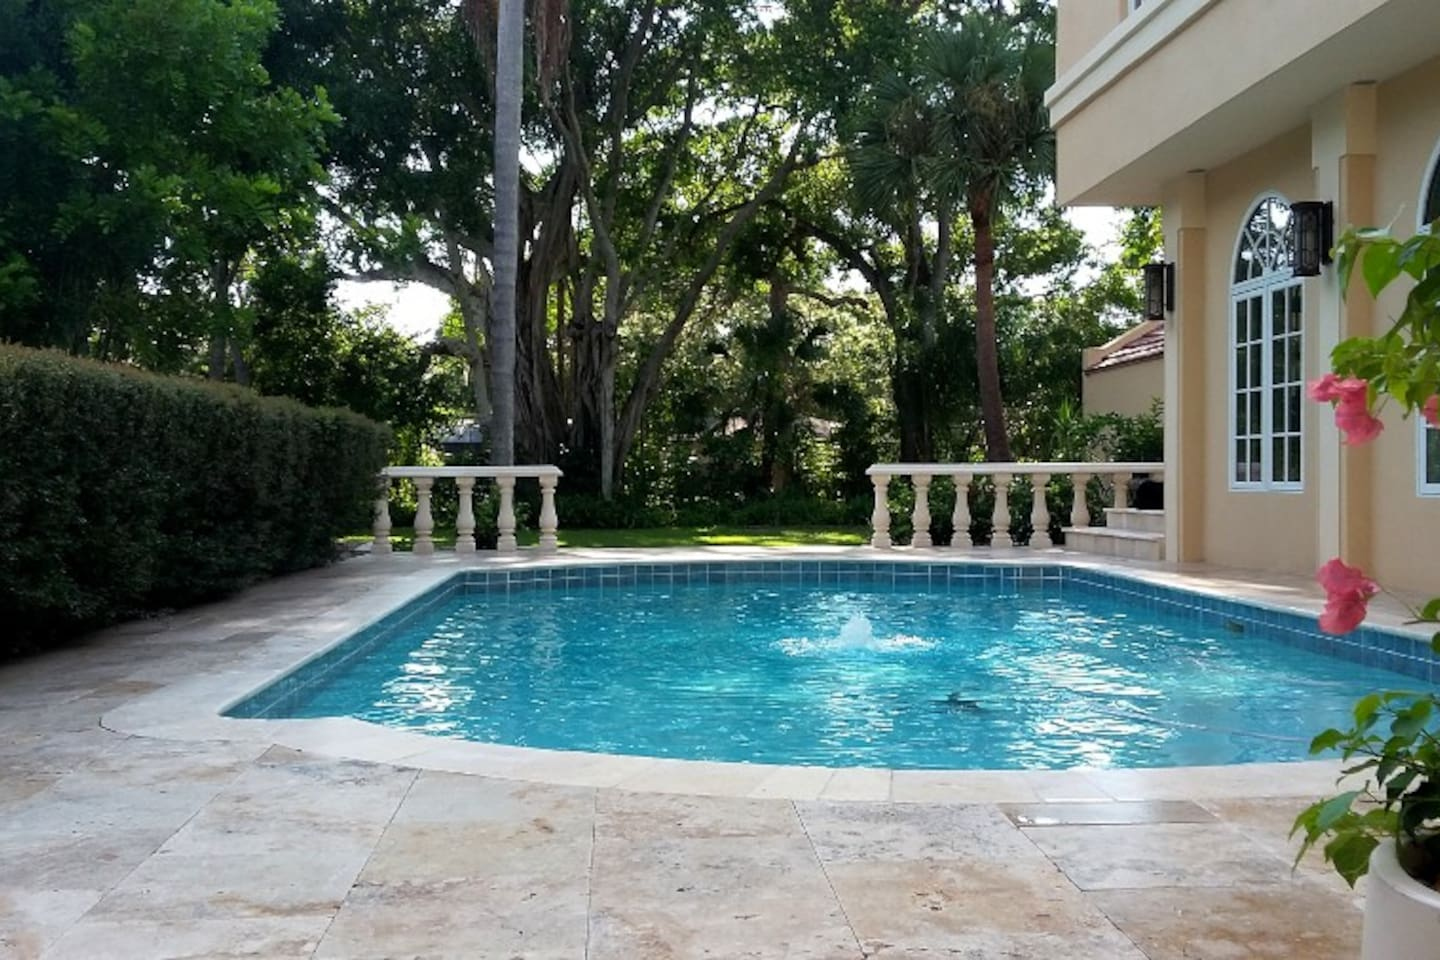 Pool area is just outside the apartment door, and is set in a lush, garden-like setting. The area is very quiet and private.